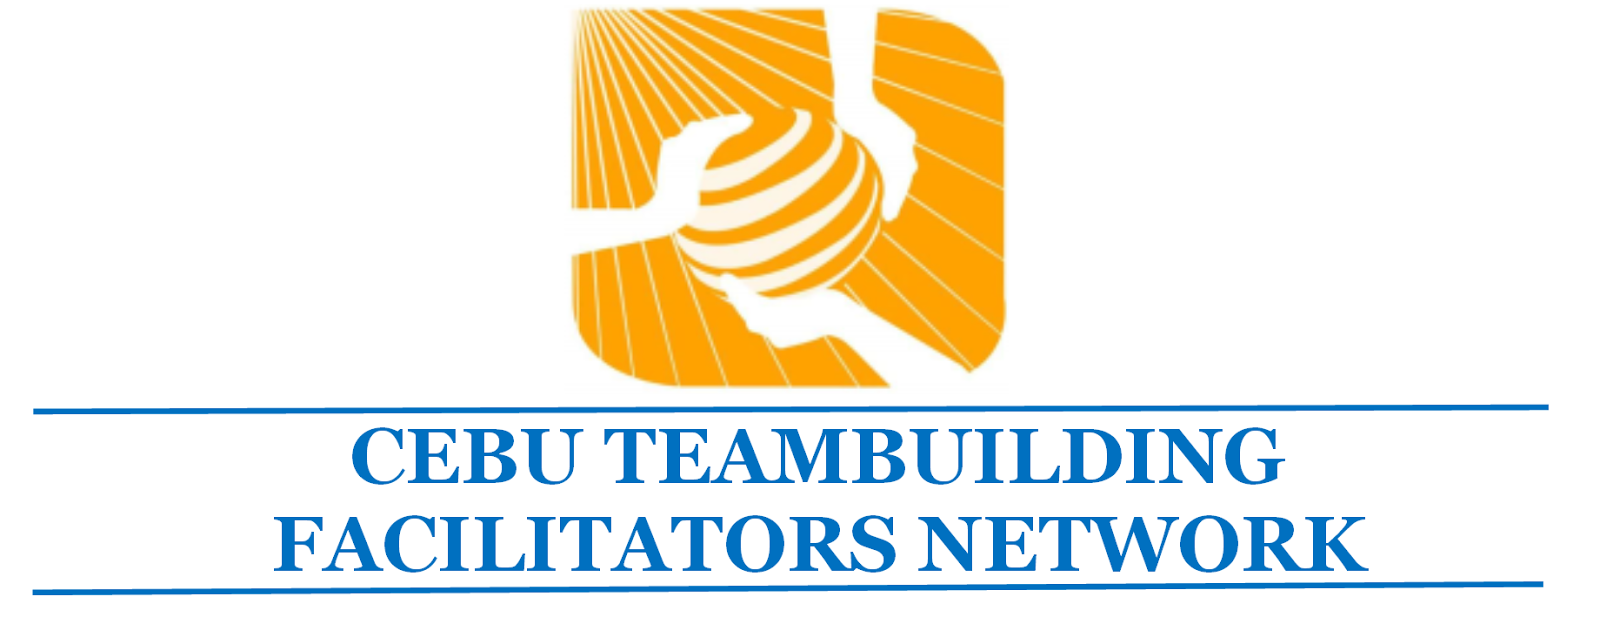 Cebu Teambuilding Facilitators Network